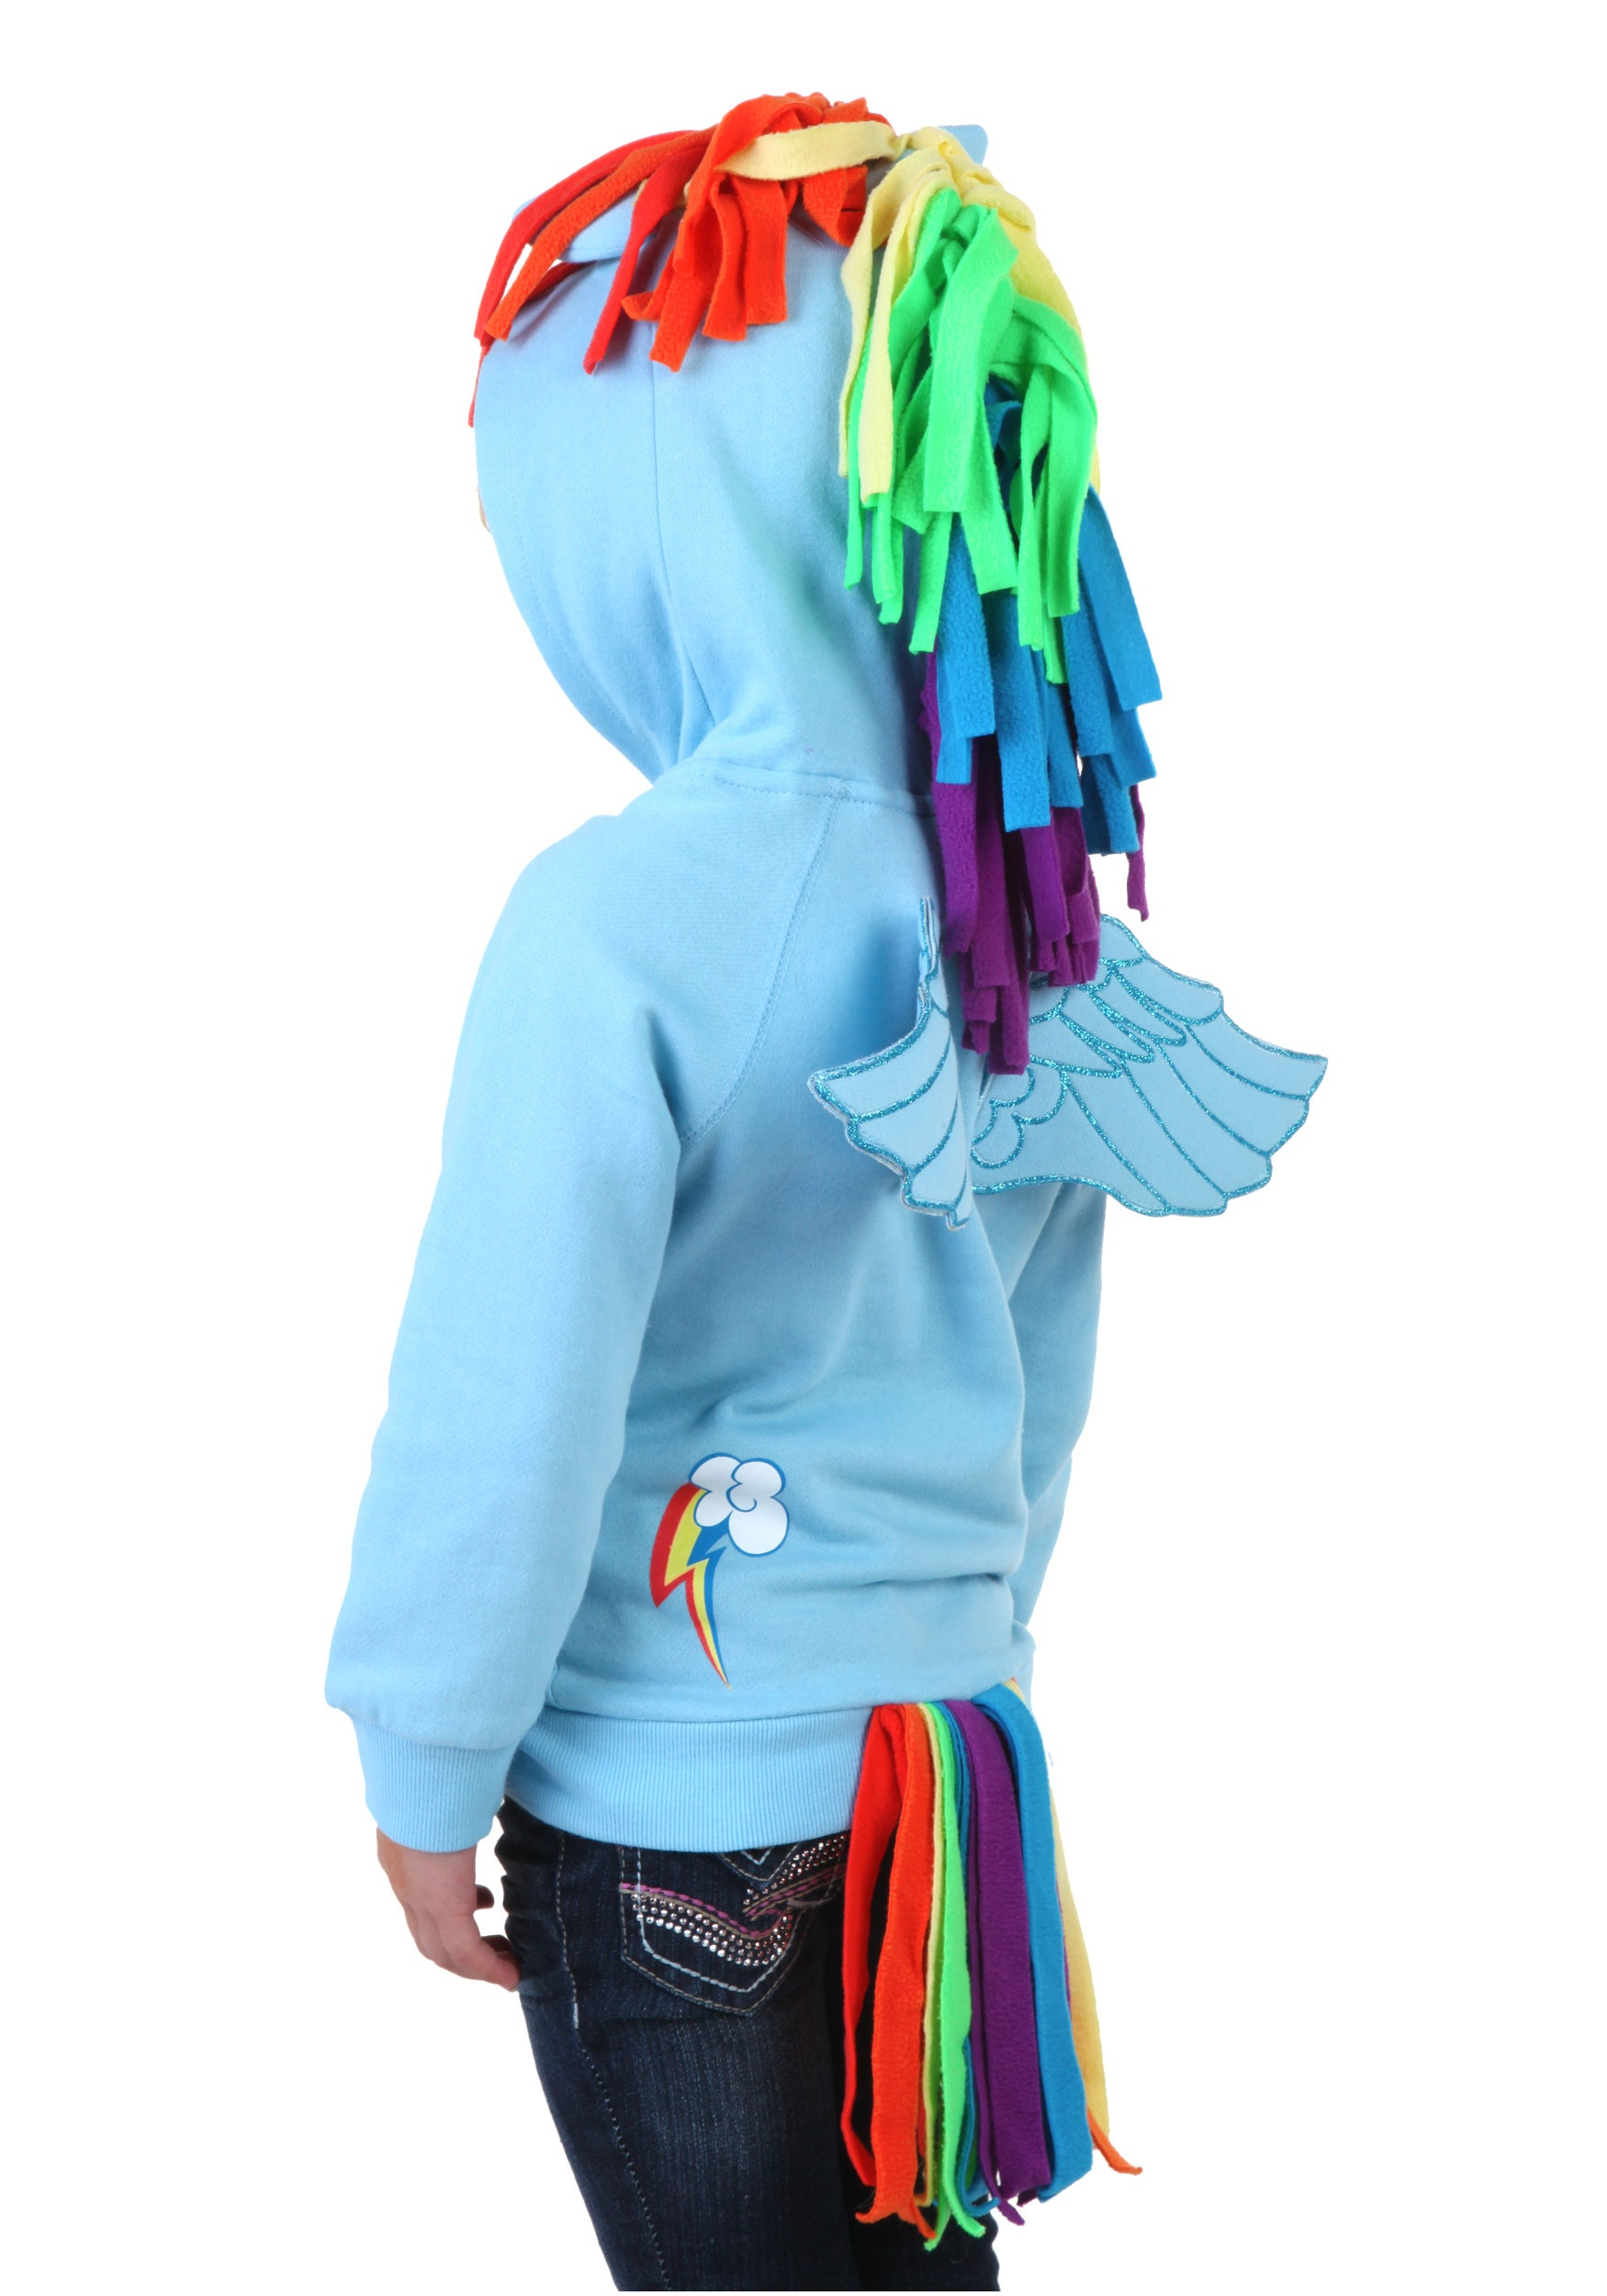 Any girl who dreams of flight will love this Kids My Little Pony Rainbow Dash Hooded Sweatshirt! It's made of soft, comfortable 60% cotton/40% polyester sweatshirt fleece, with front pockets and a separating zipper with a pull-tab shaped like a rainbow lightning bolt.